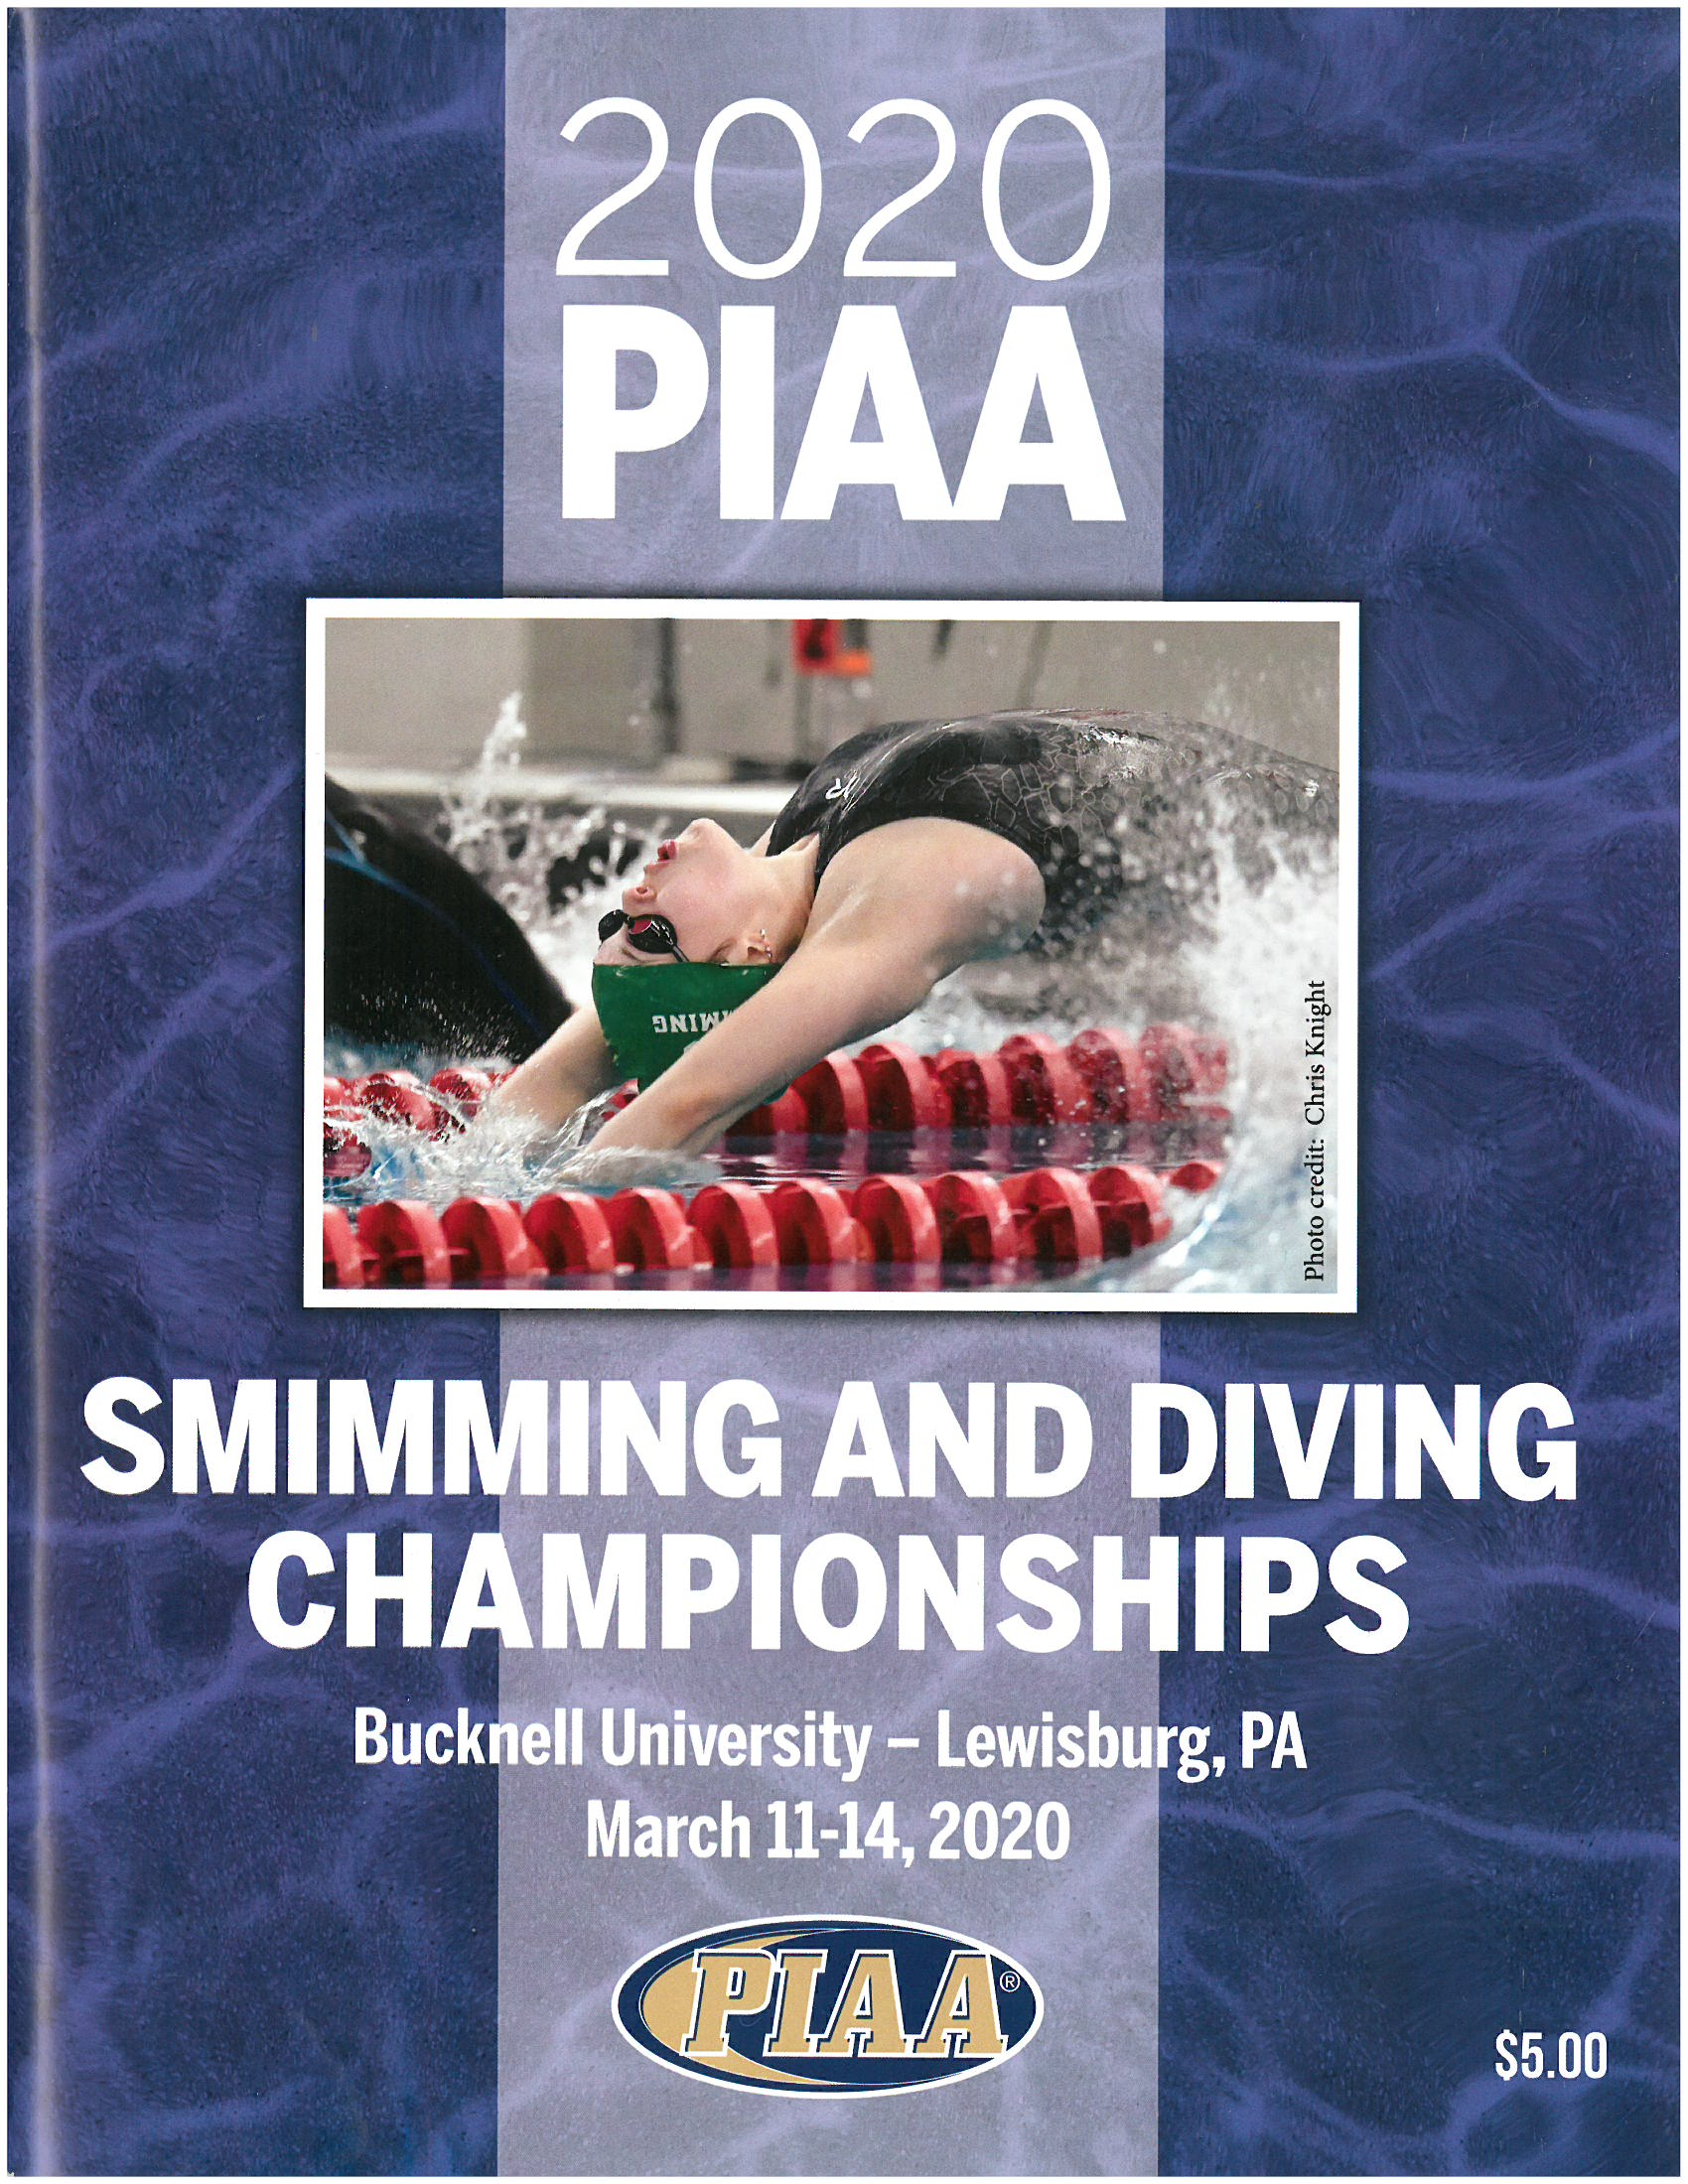 2017 Swimming and Diving Championship Program